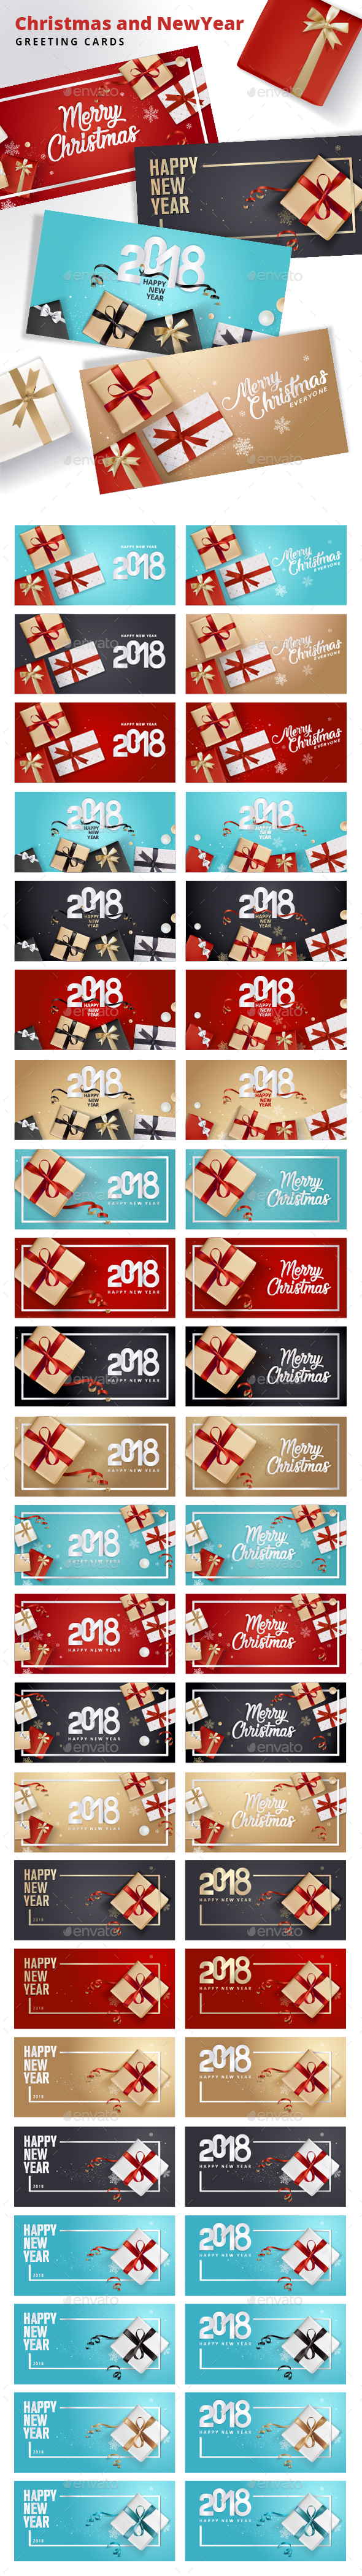 Christmas and New Year's Greeting Cards - New Year Seasons/Holidays